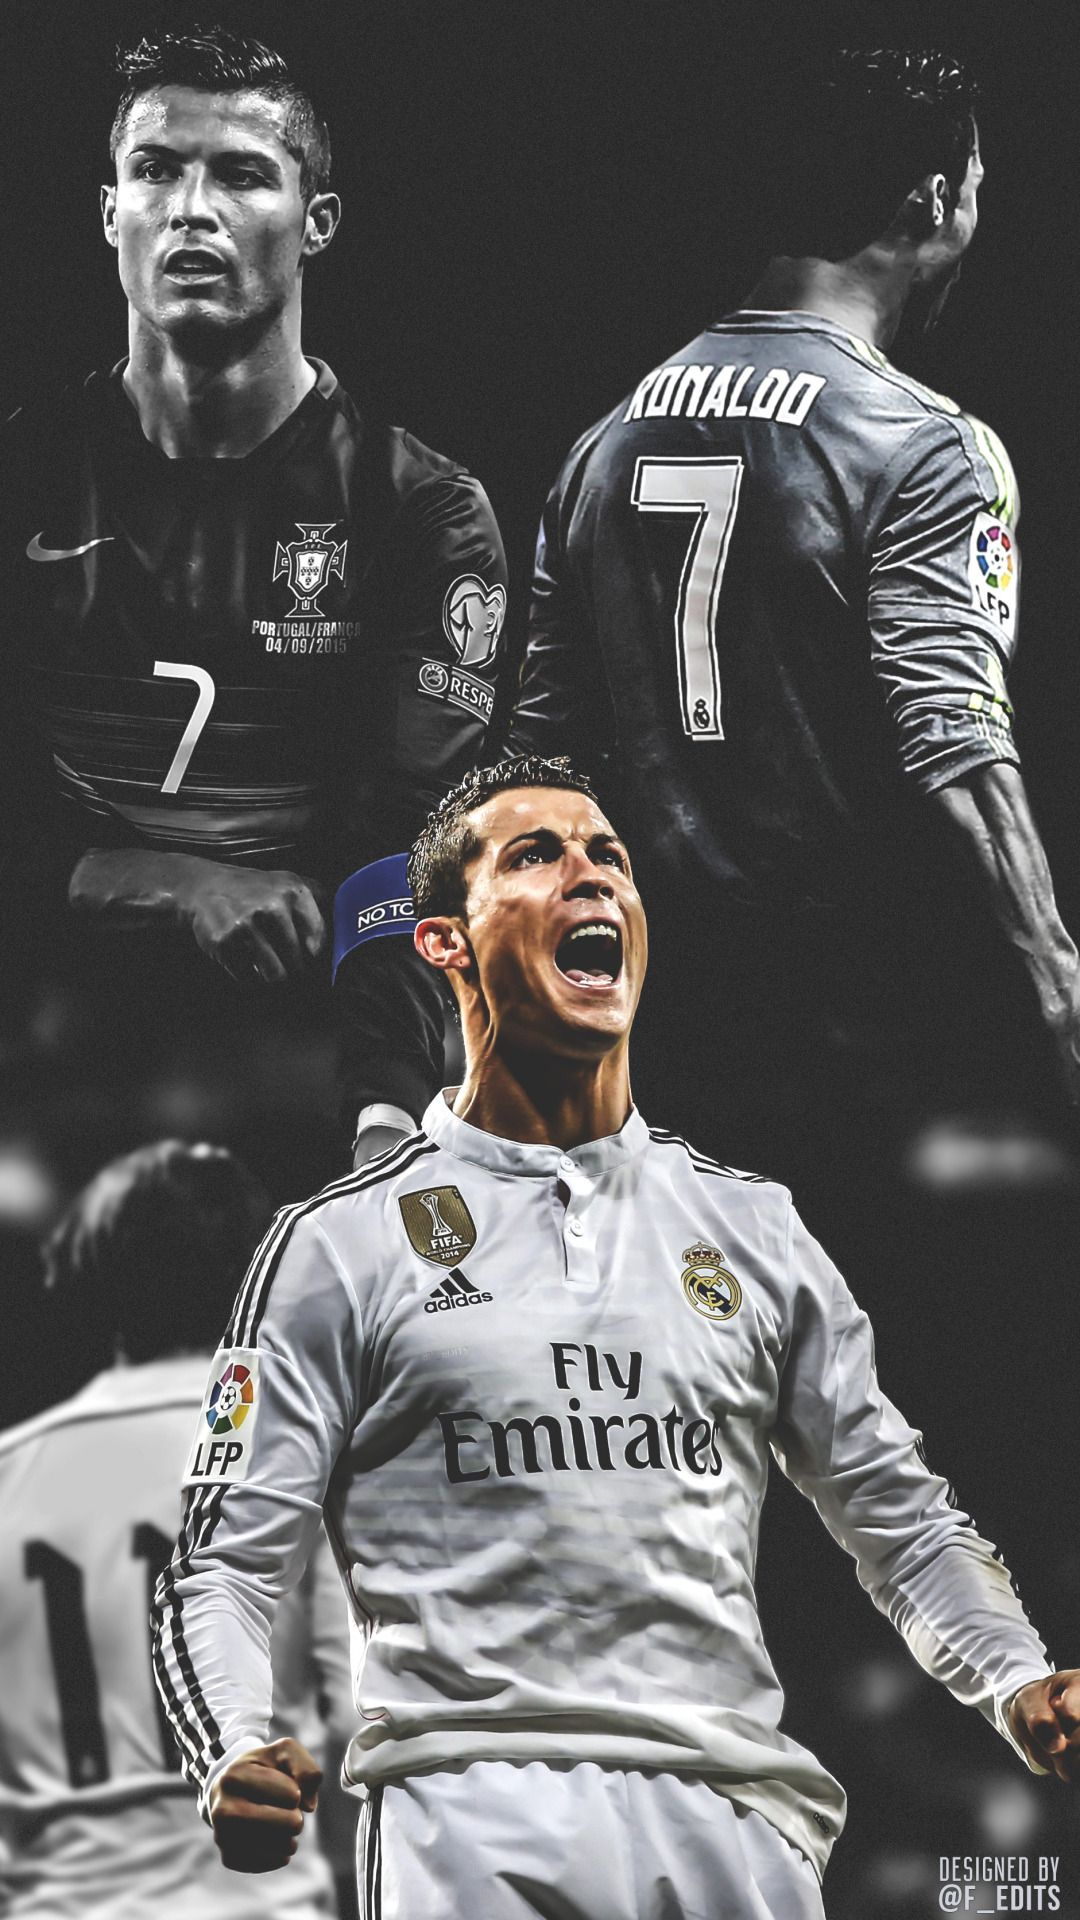 Cristiano Ronaldo - iPhone wallpaper | Cr7 | Cristiano ronaldo wallpapers, Cristiano Ronaldo ...